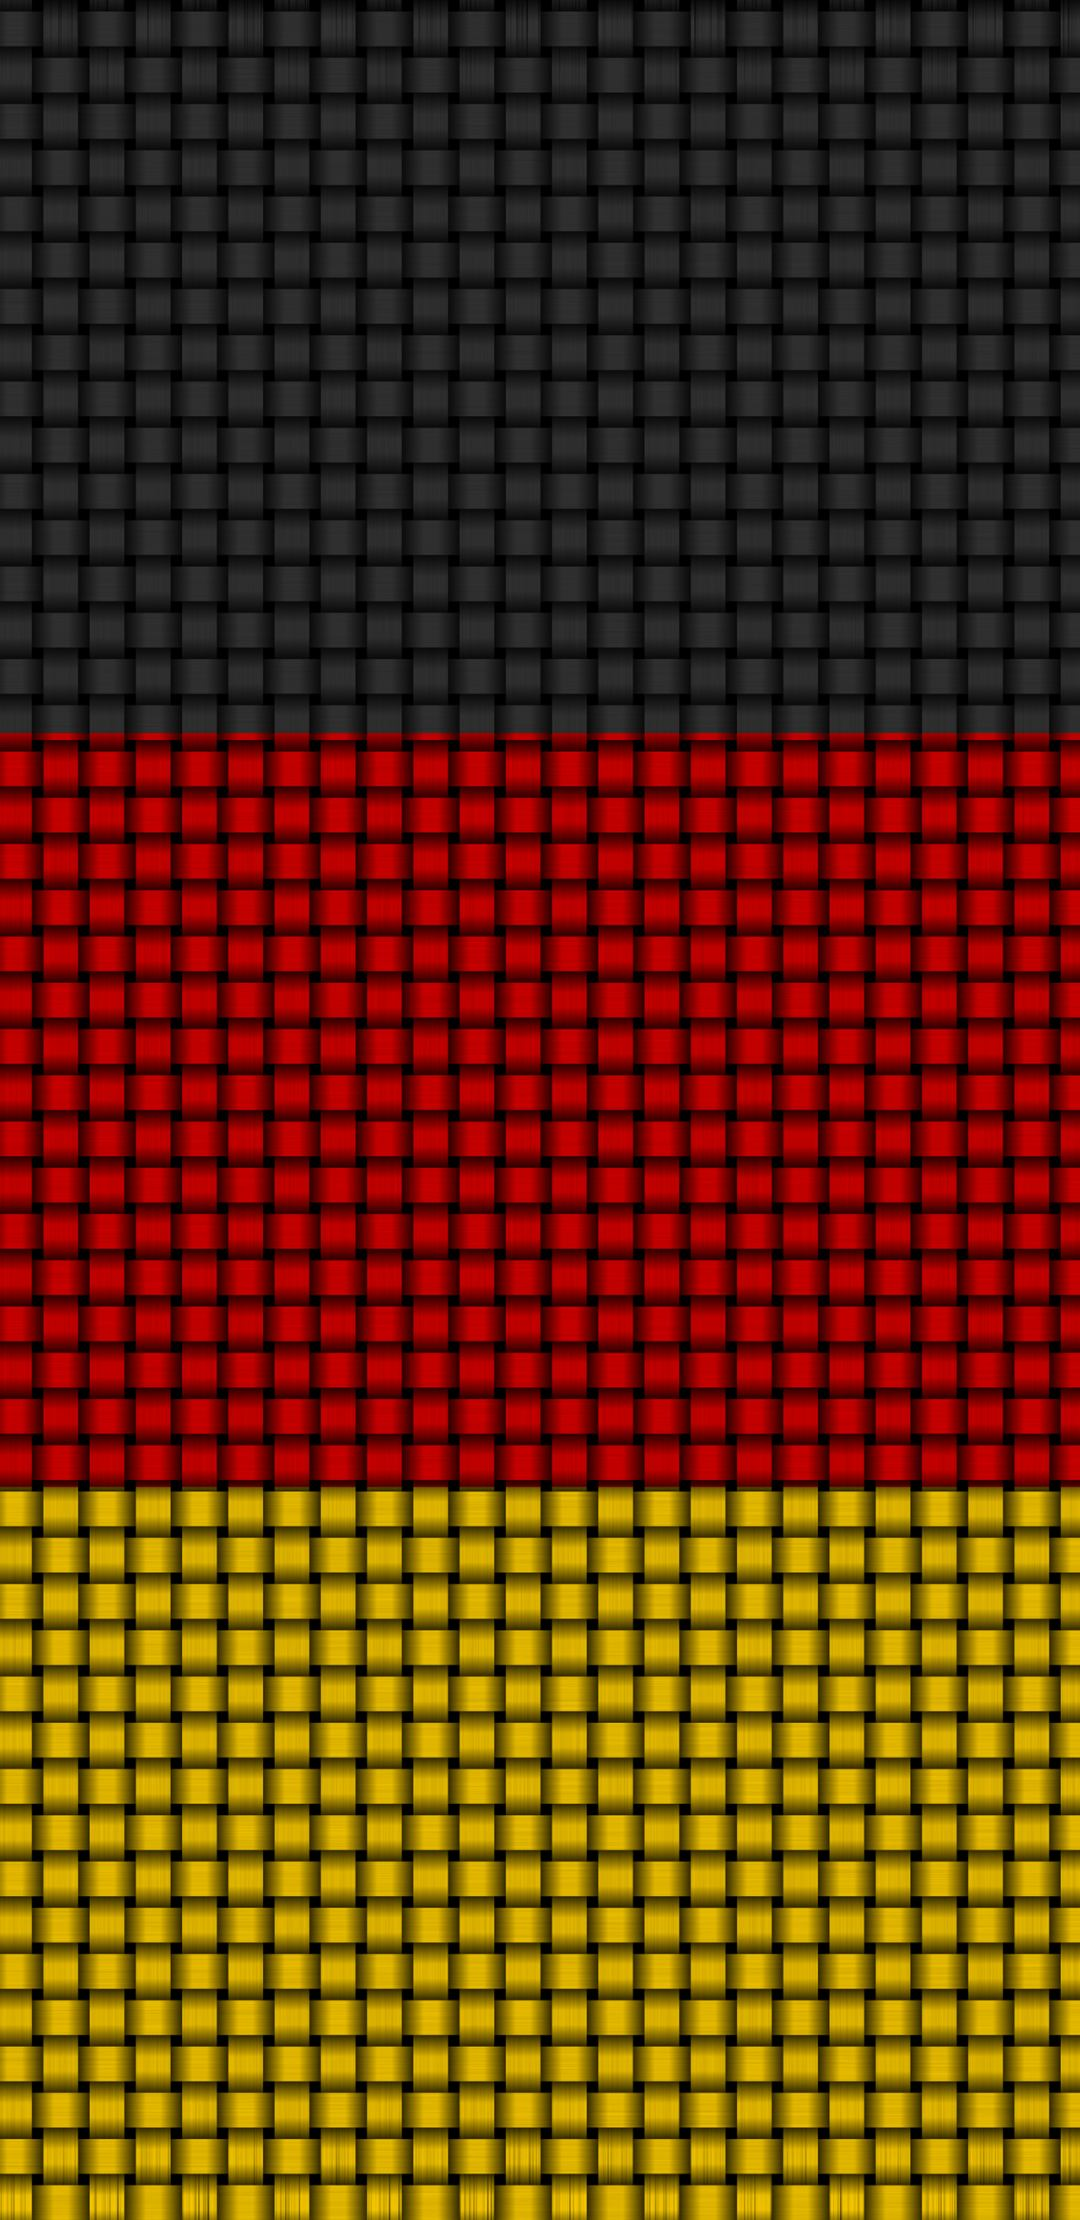 Wallpaper Deutschland Stoff Gratis Stuff Furs Handy